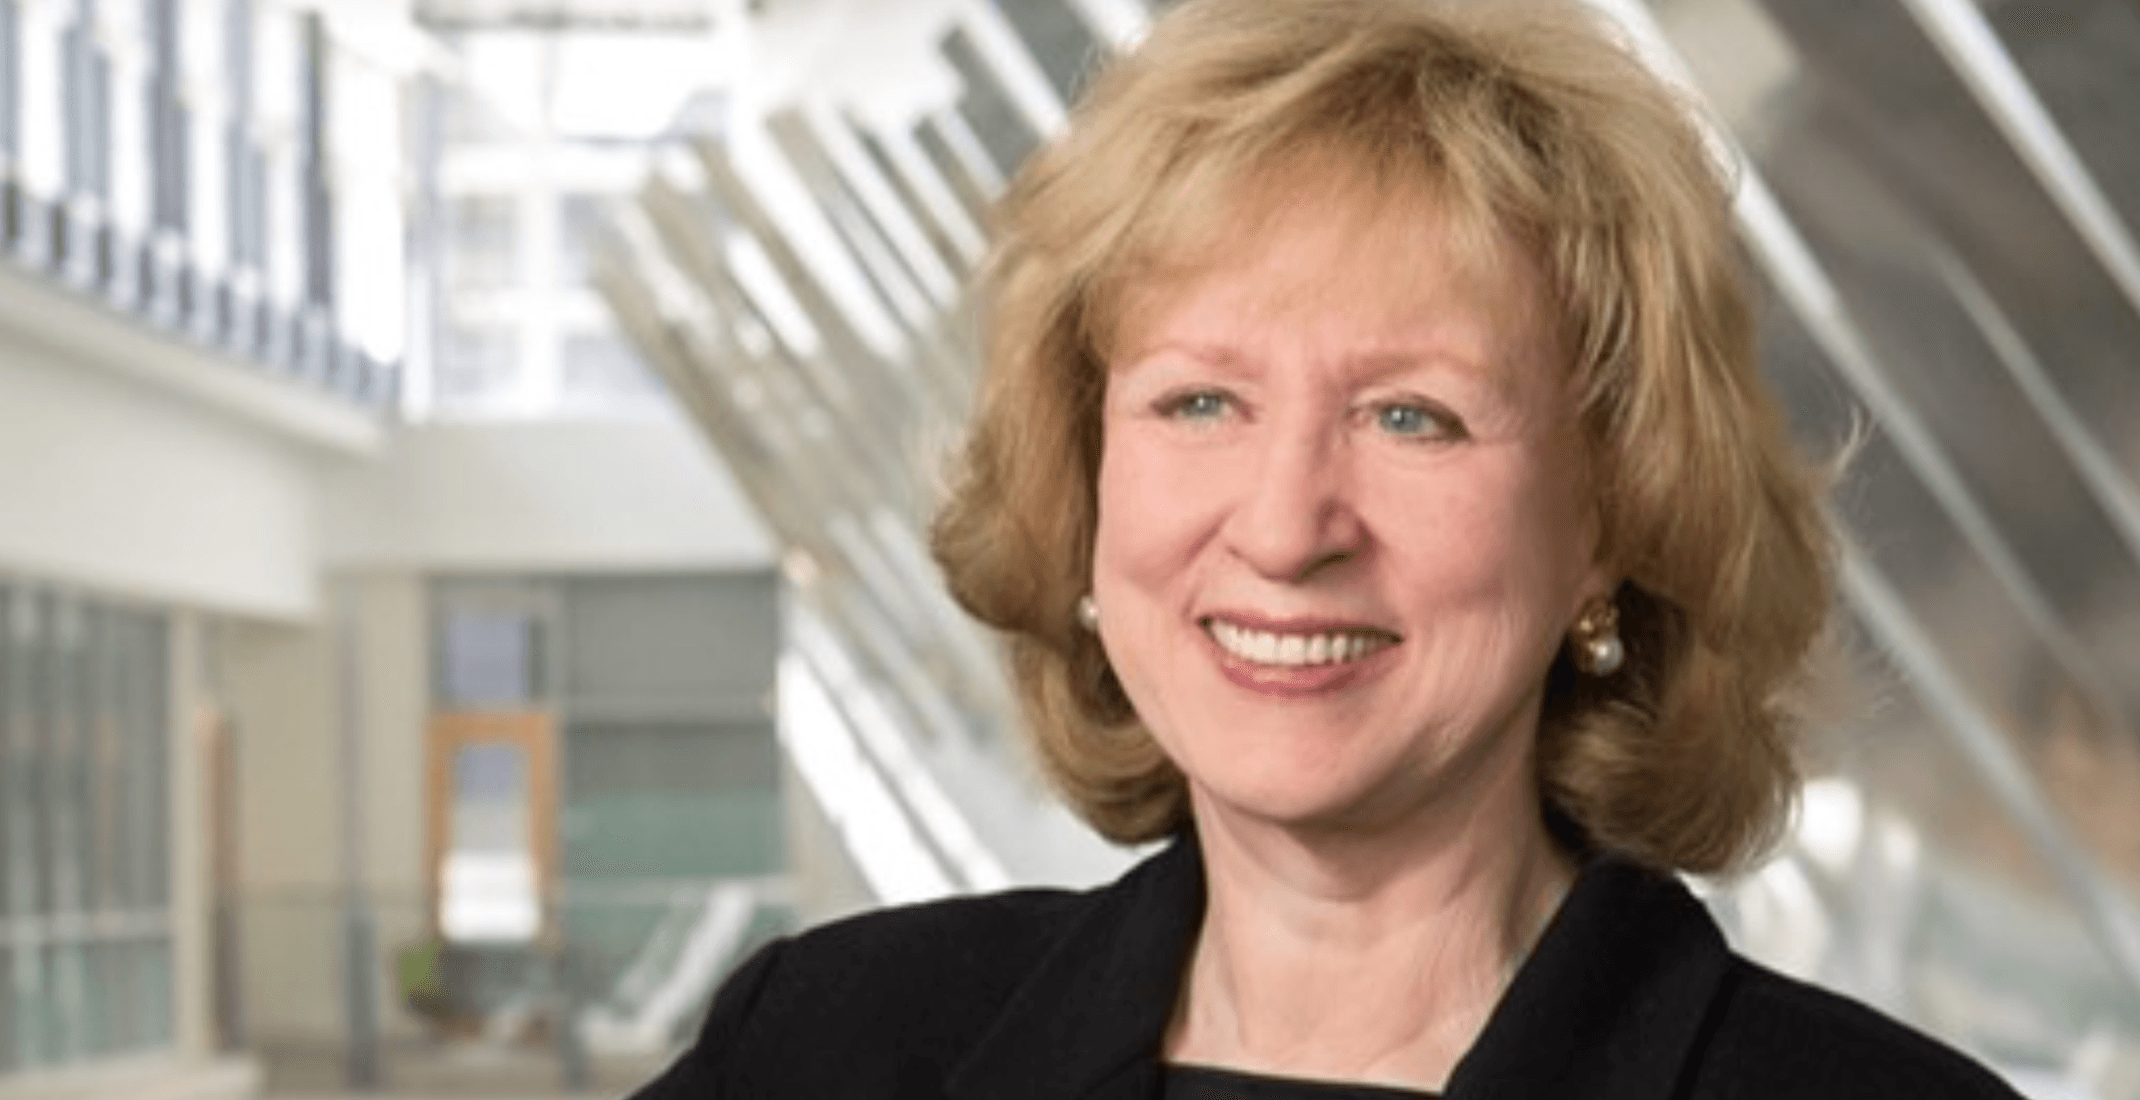 Former Prime Minister Kim Campbell says sleeveless tops 'demeaning' for female TV anchors